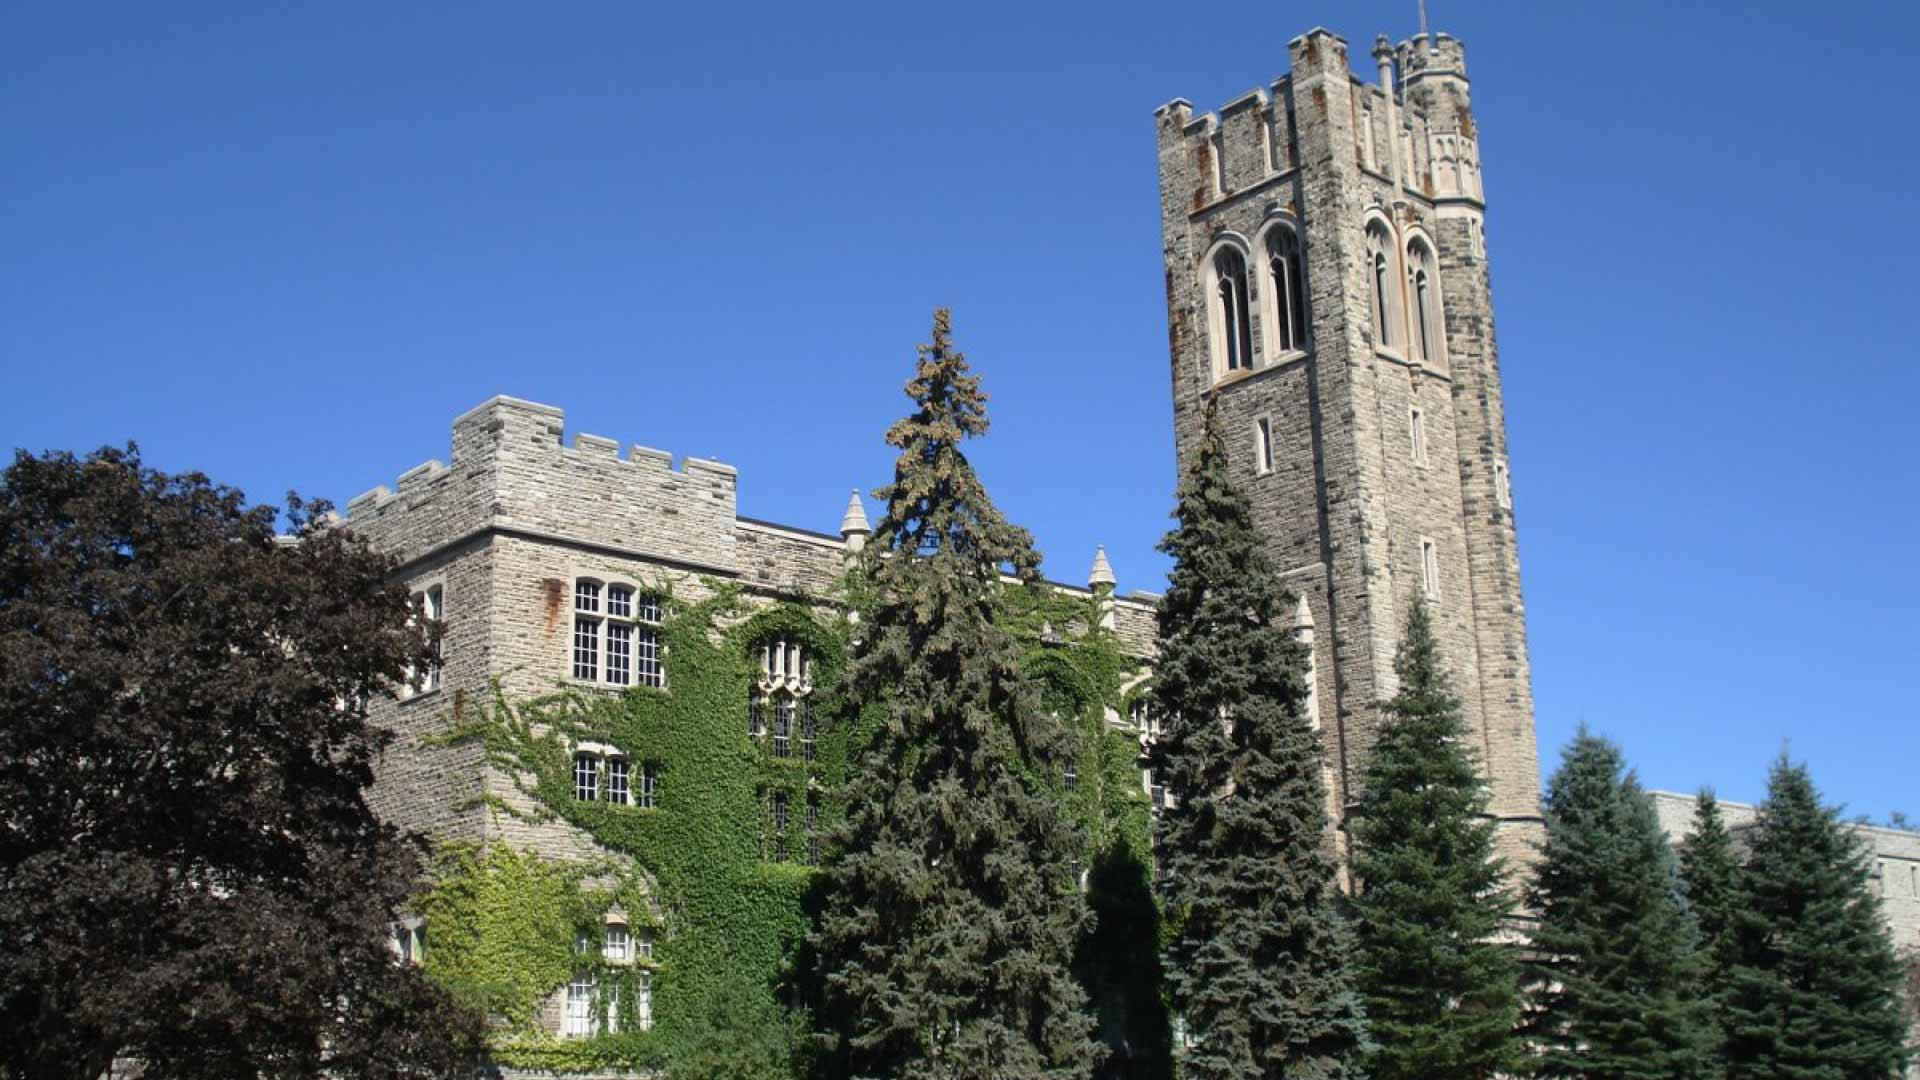 University College Building tower above trees against blue sky at University of Western Ontario